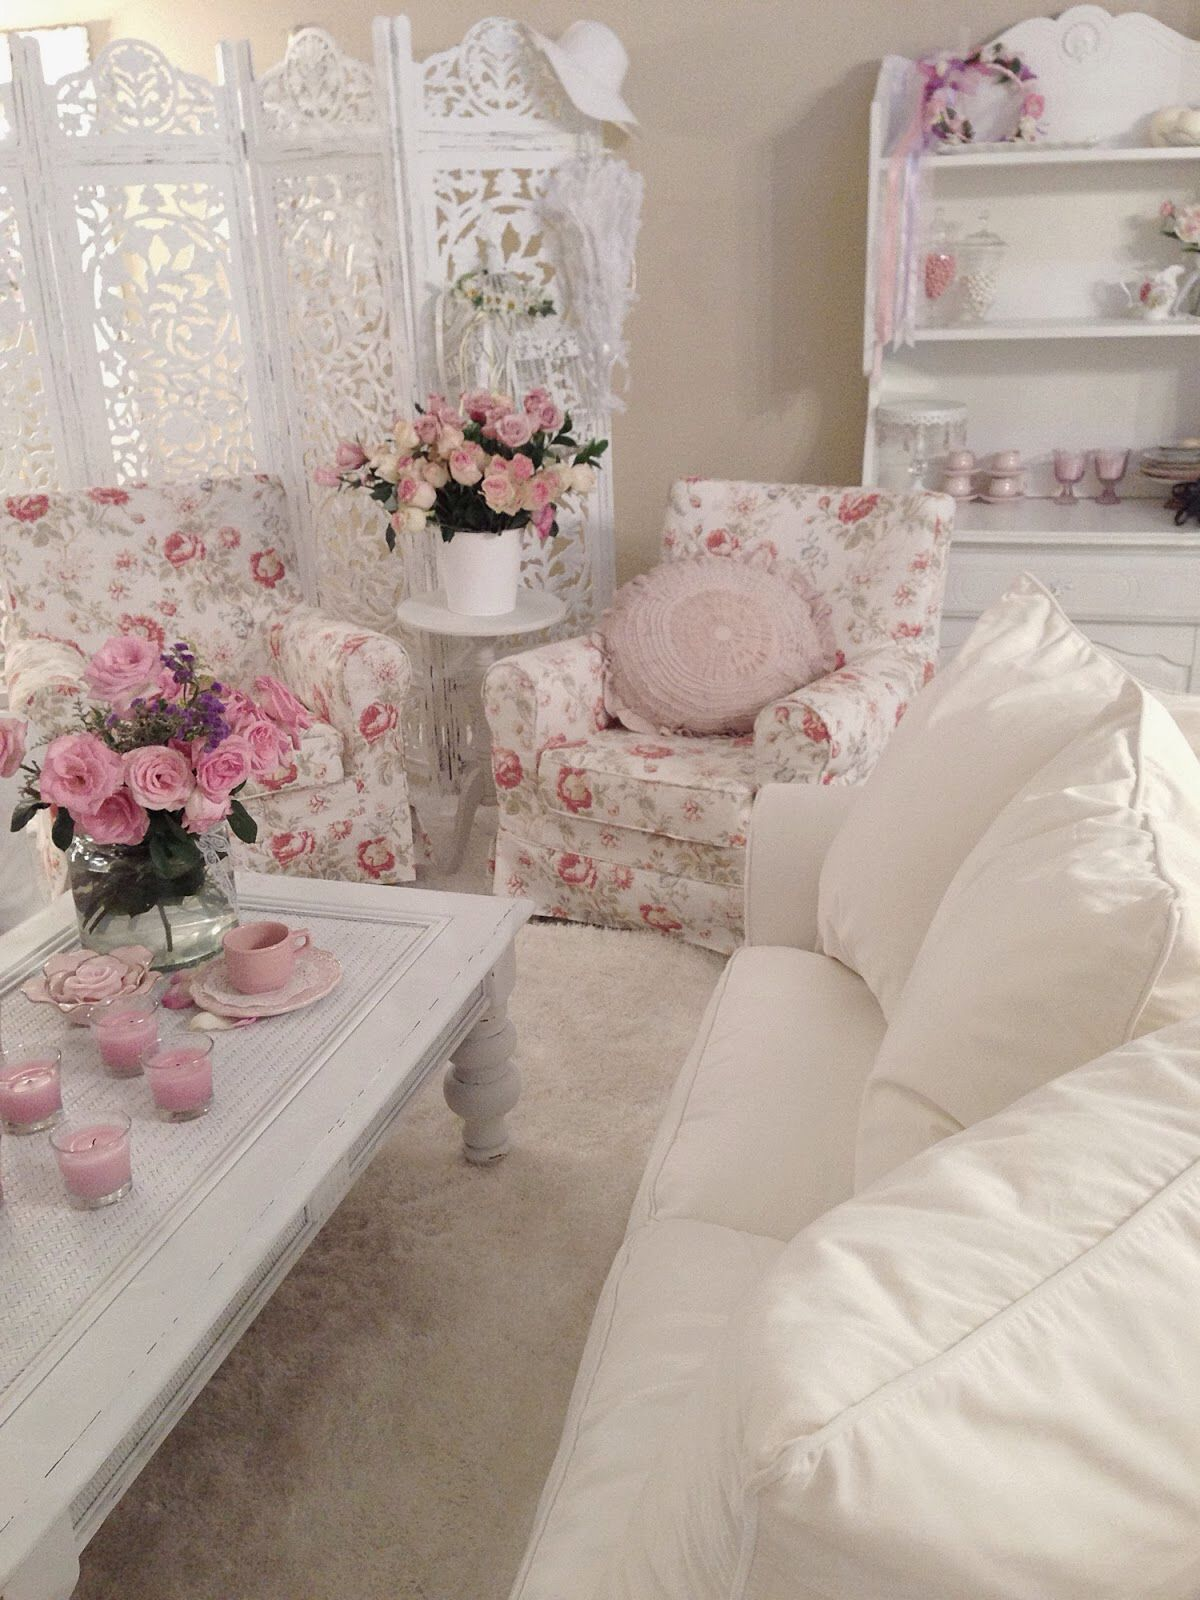 Salon floral shabby chic.  Source: Pinterest